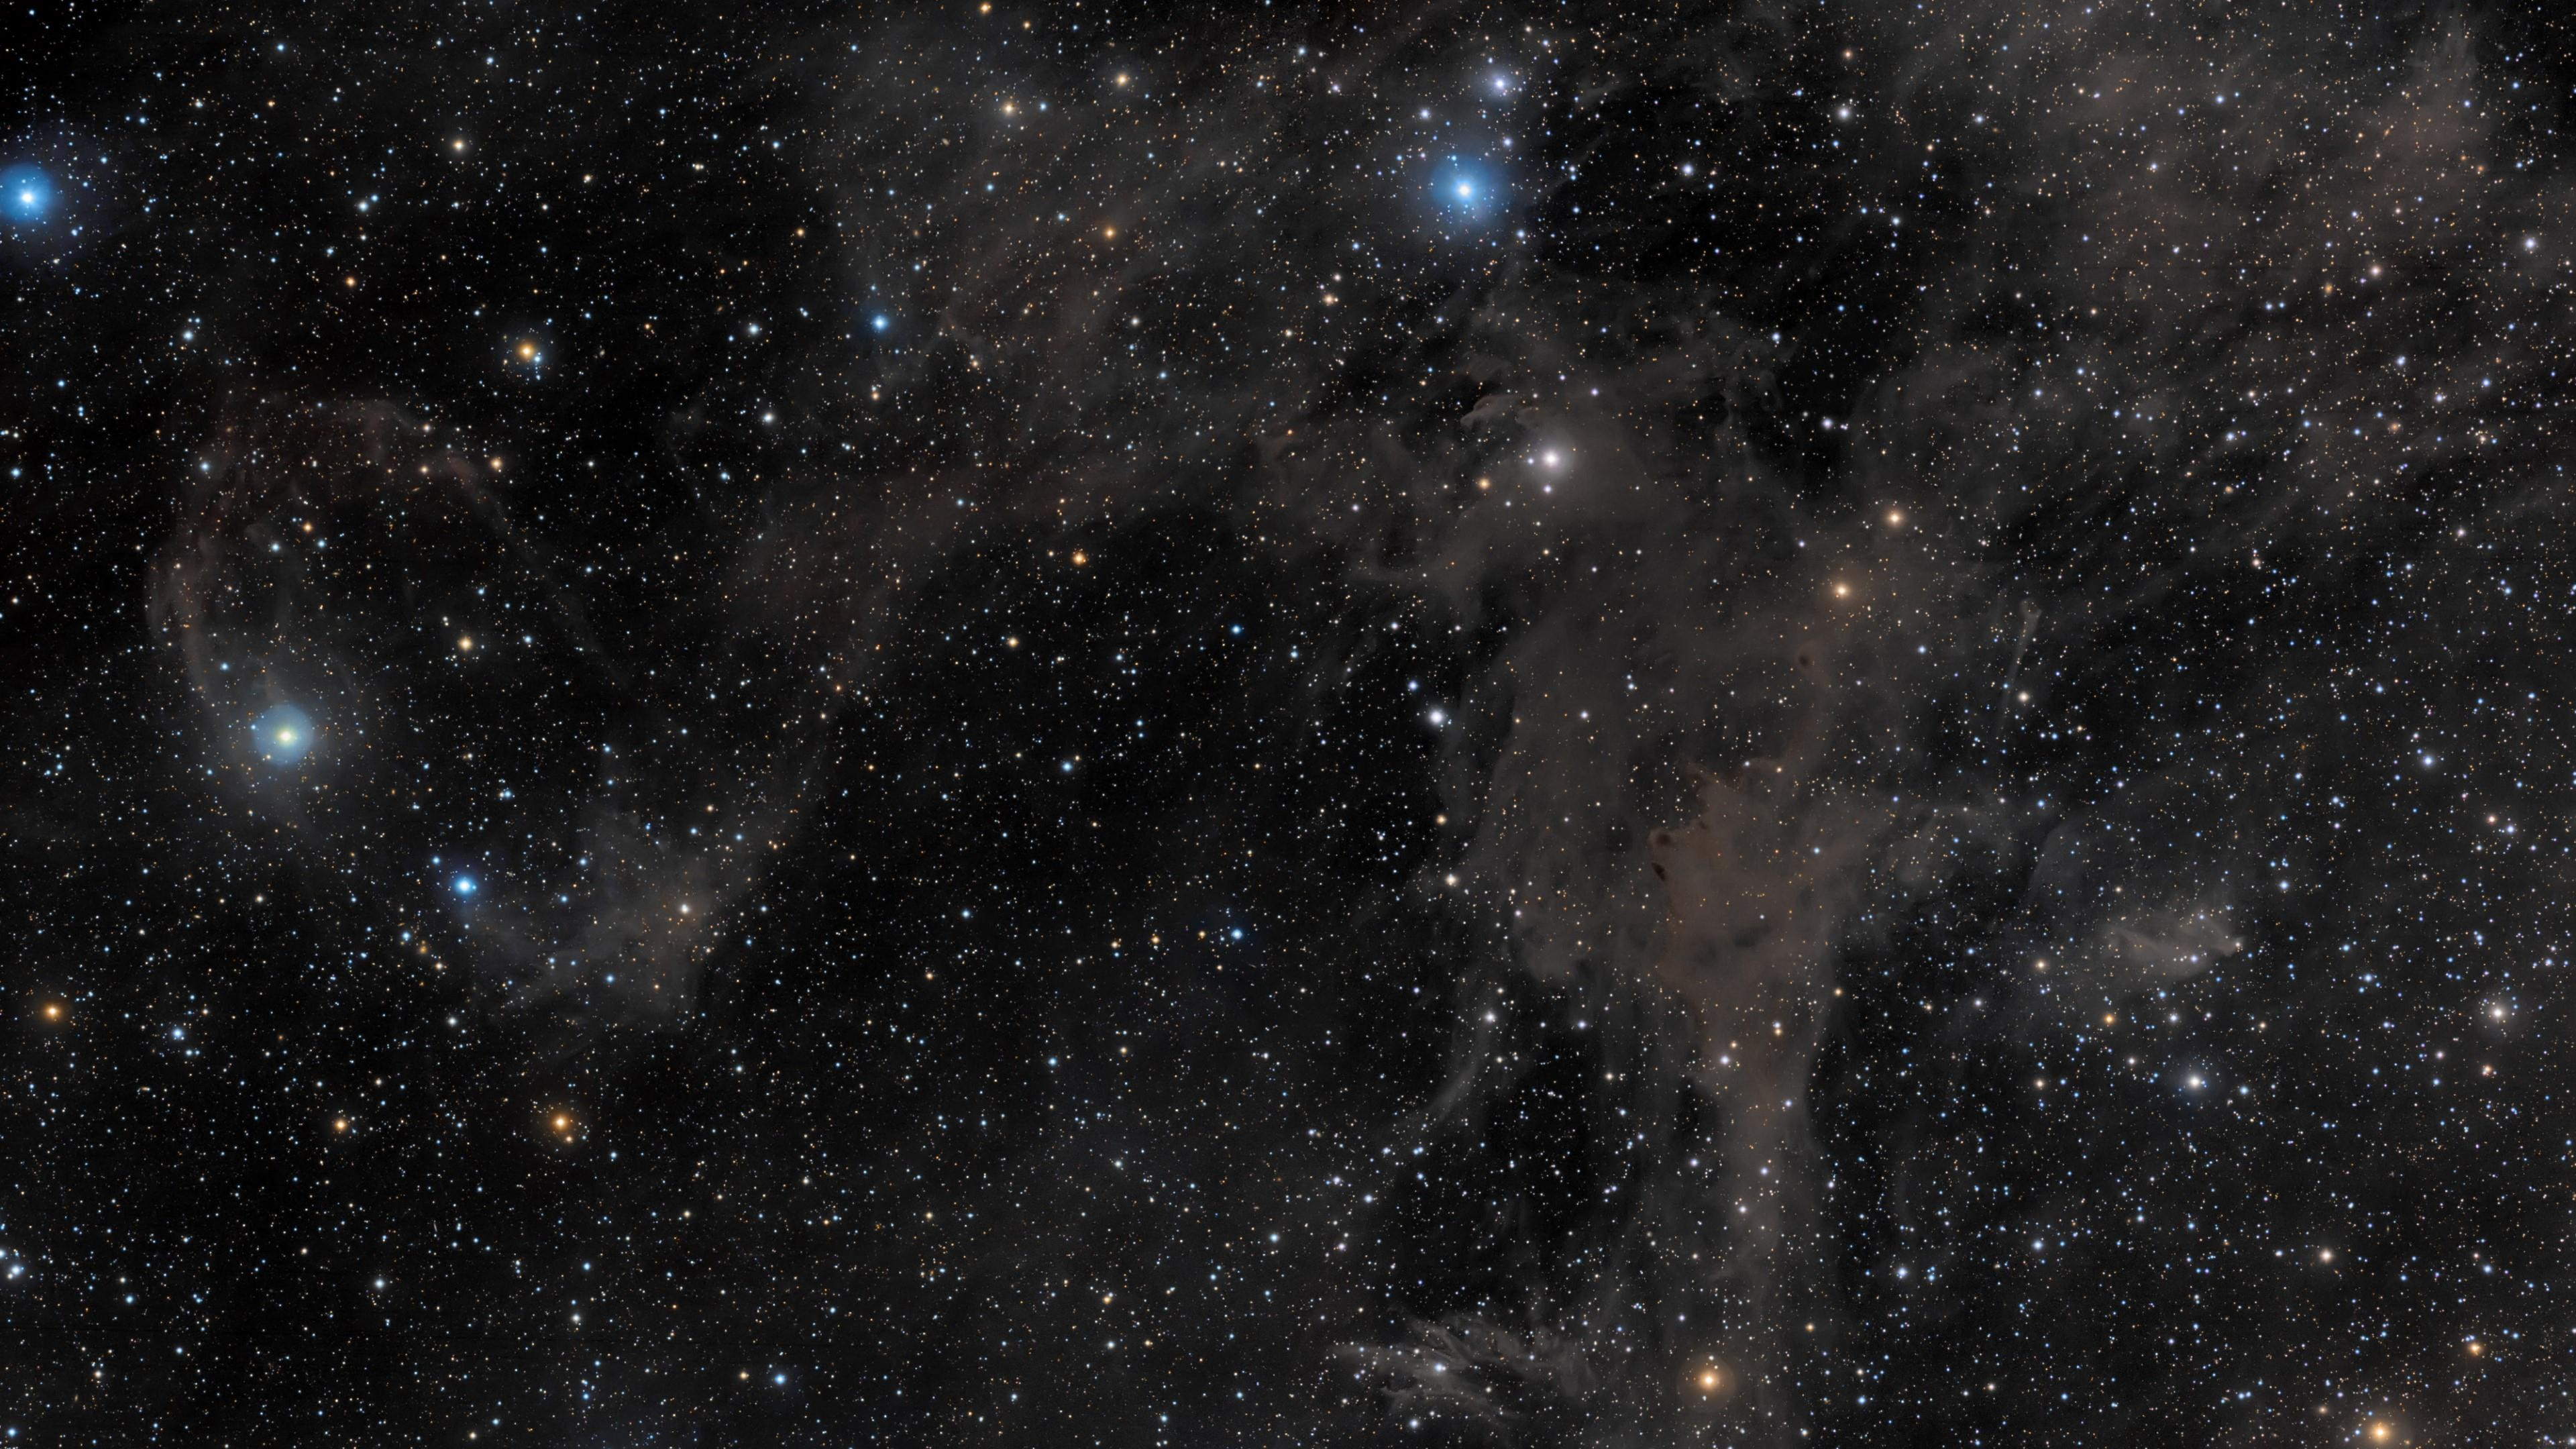 Starry Sky Wallpaper (57+ images)